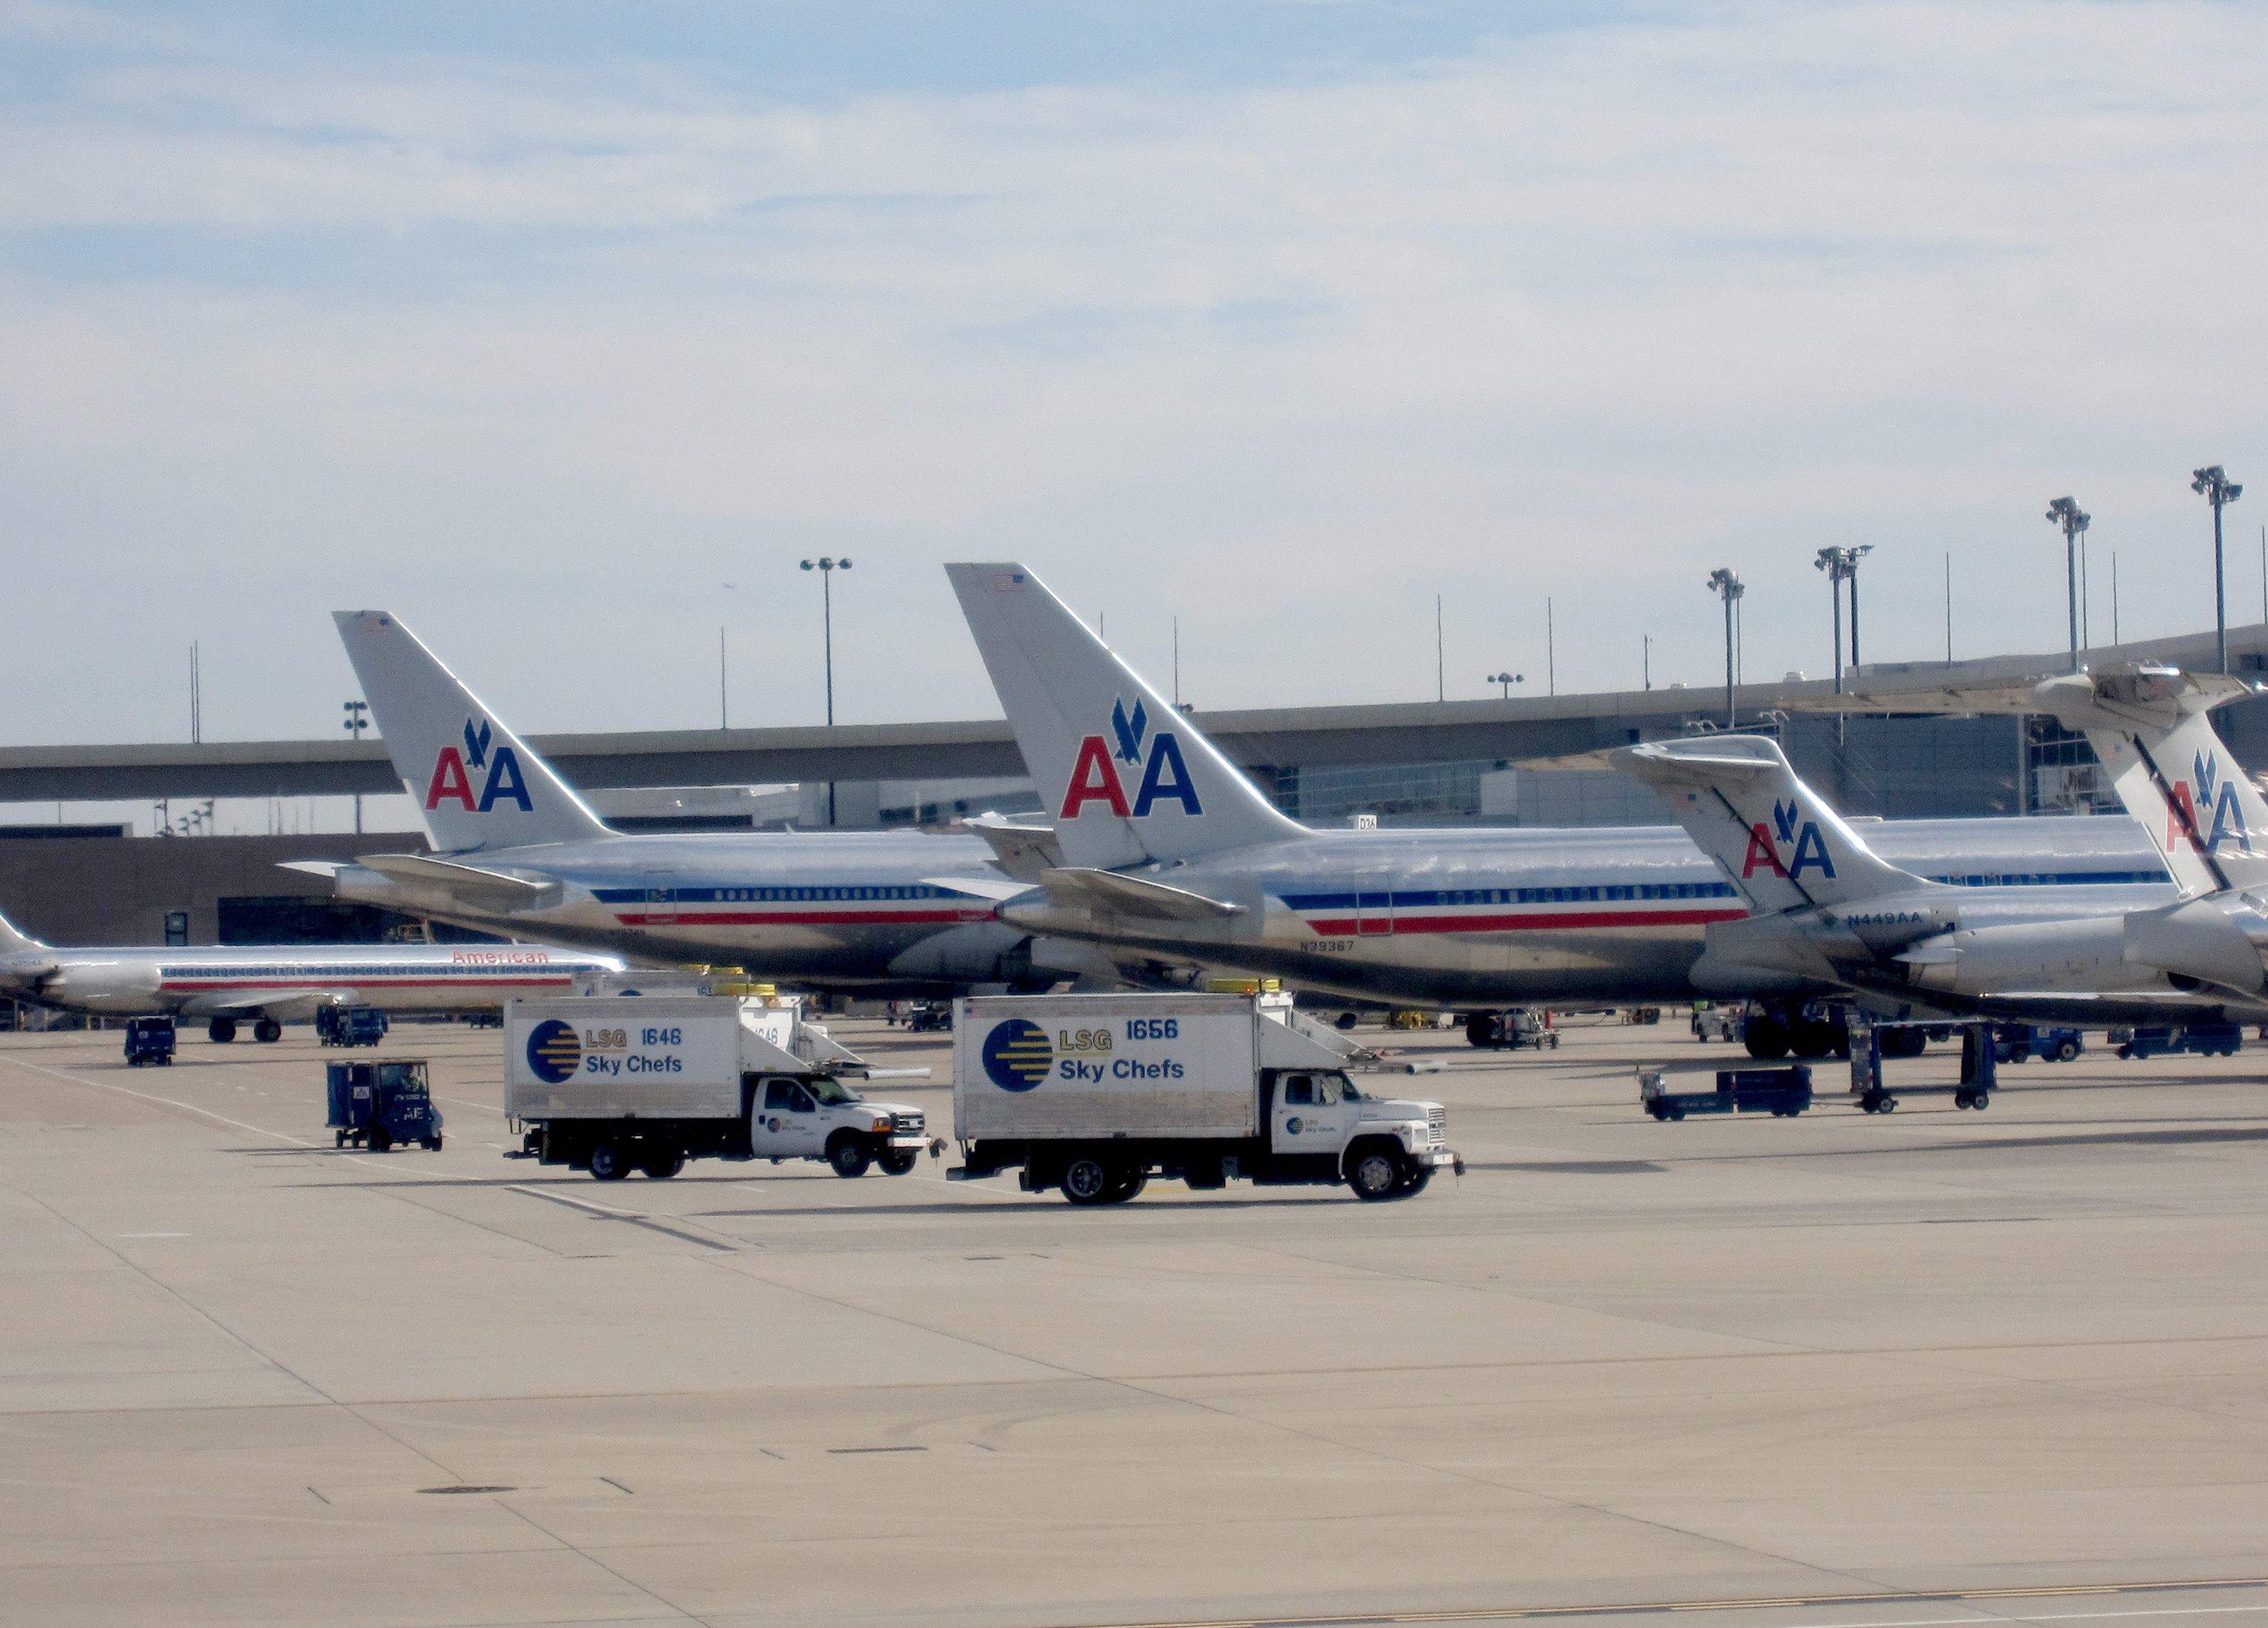 File:AA.Fleet.DFW.2009.JPG - Wikimedia Commons